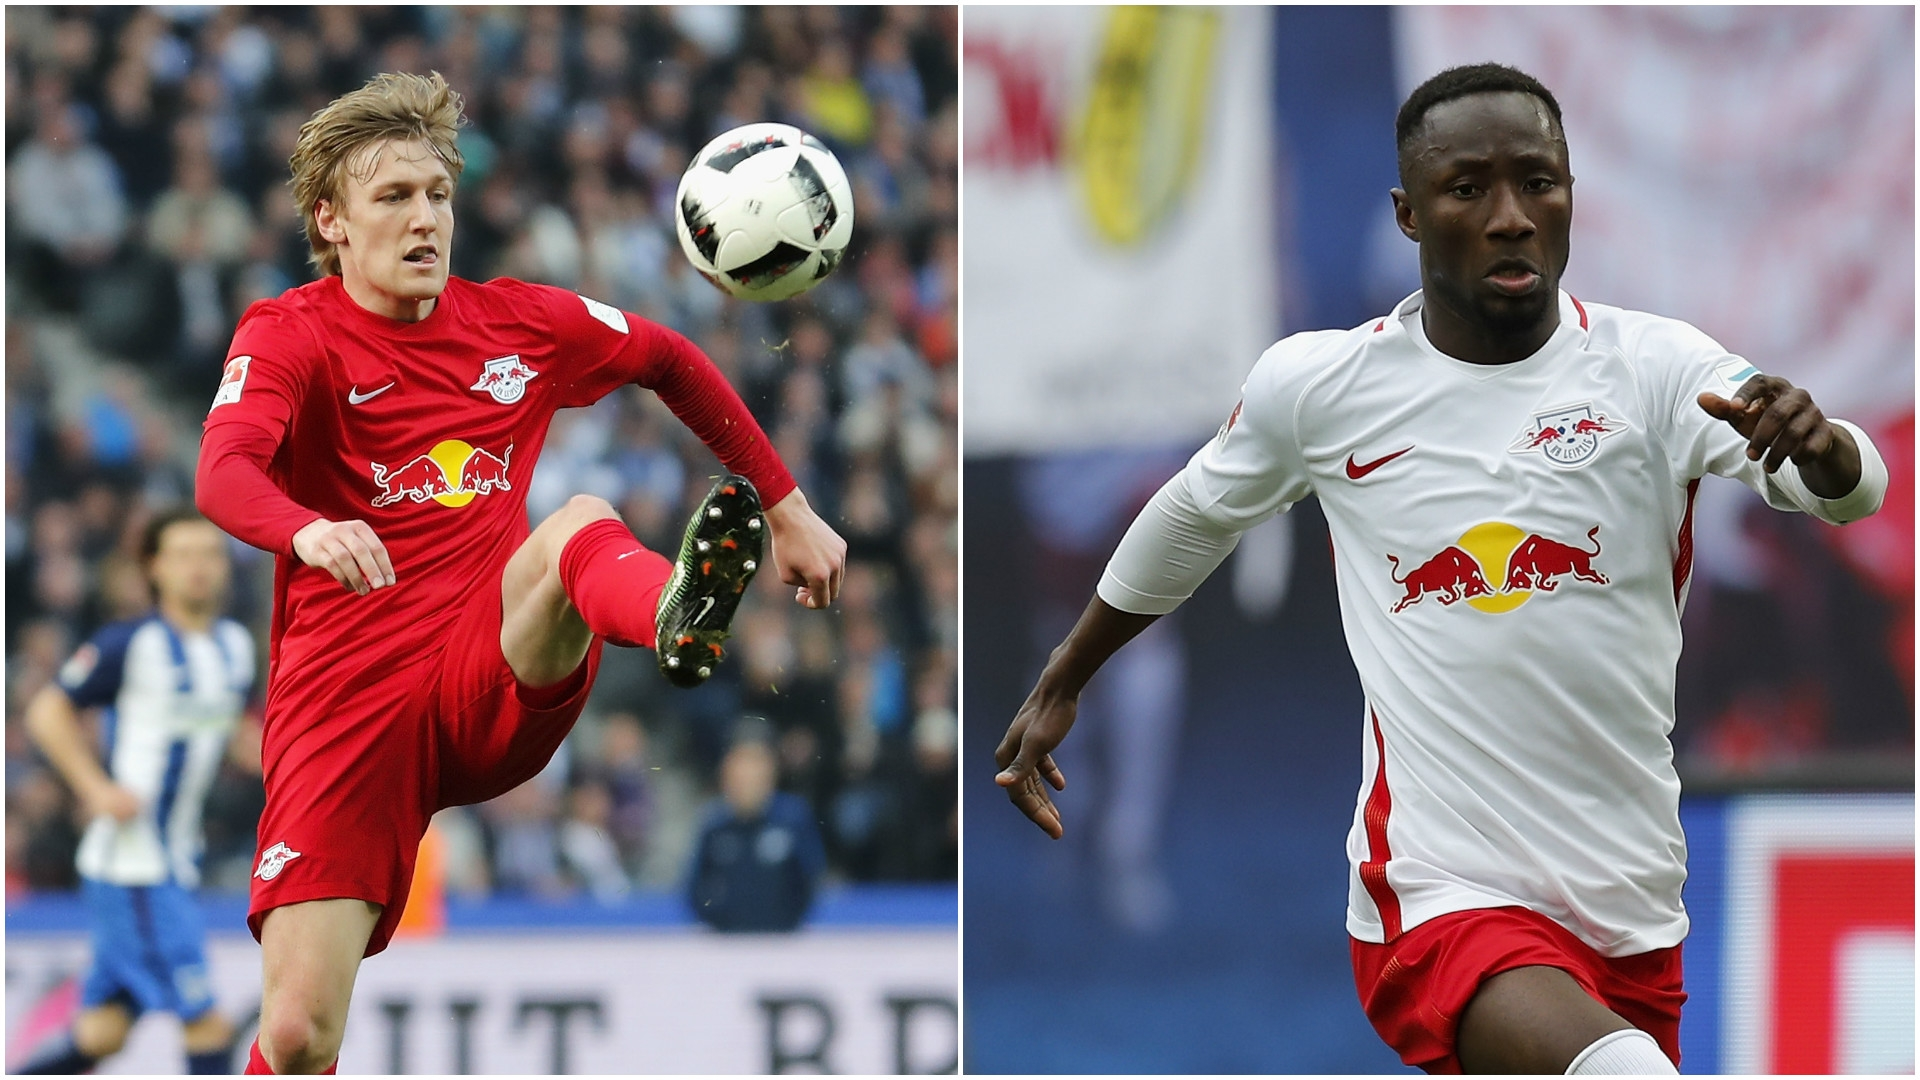 RB Leipzig has recently received good news from UEFA, who confirmed that the club would be allowed to participate in next year's Champions League competition.